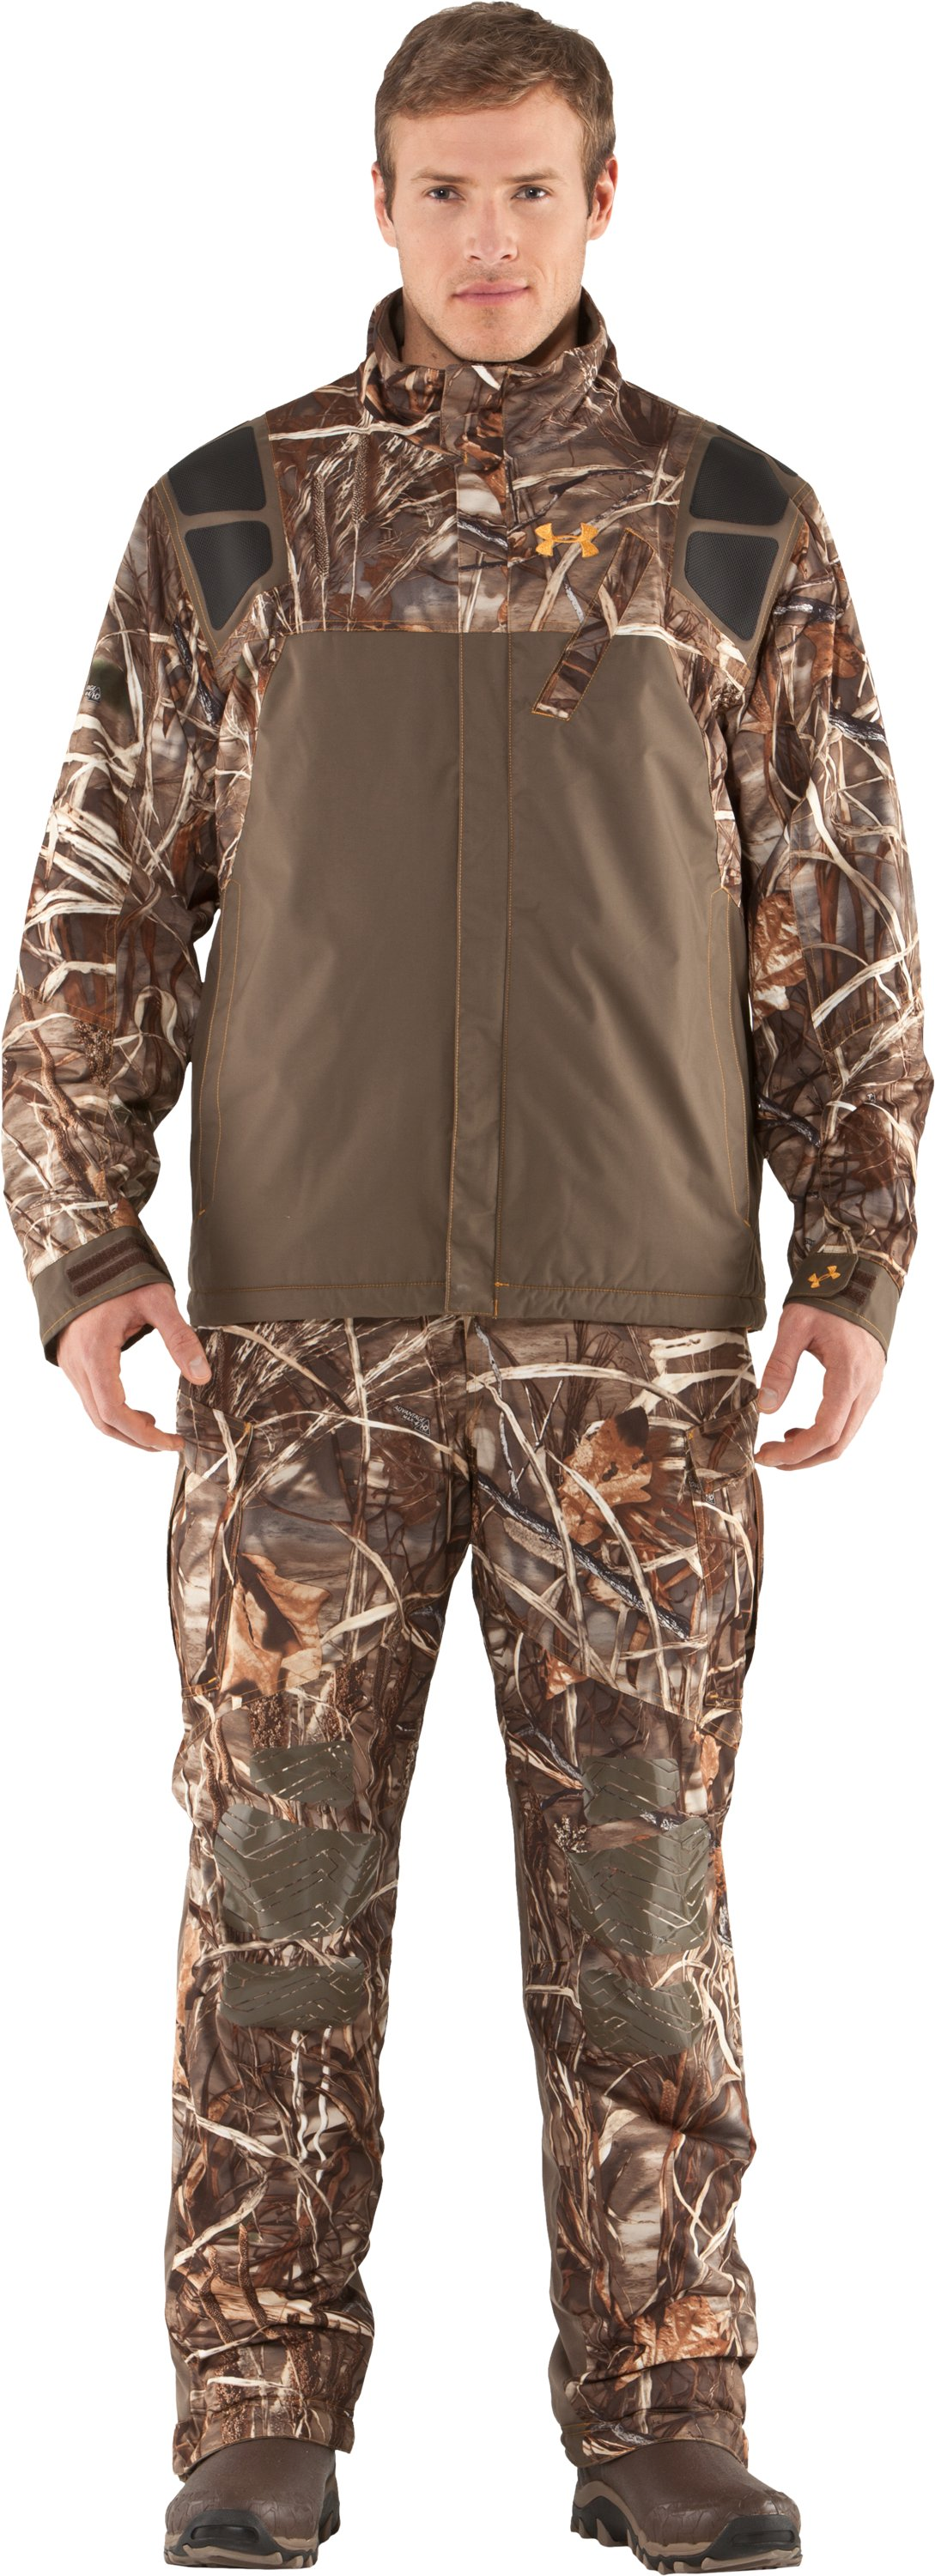 Men's Skysweeper Camo Hunting Jacket, Realtree Max